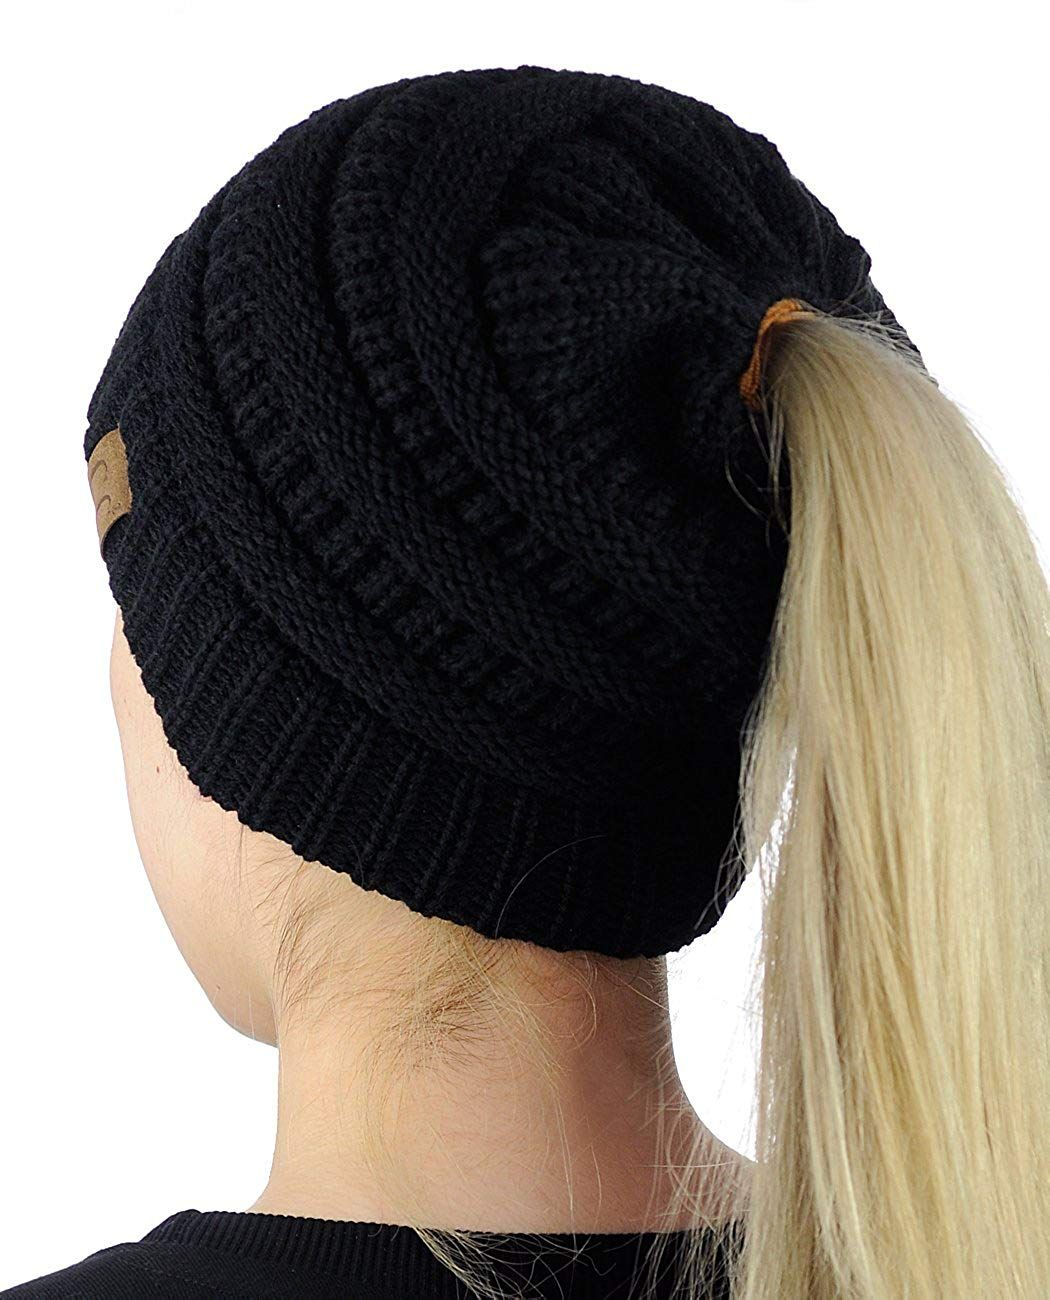 C.C BeanieTail Soft Stretch Cable Knit Messy High Bun Ponytail Beanie Hat f1465bed376f